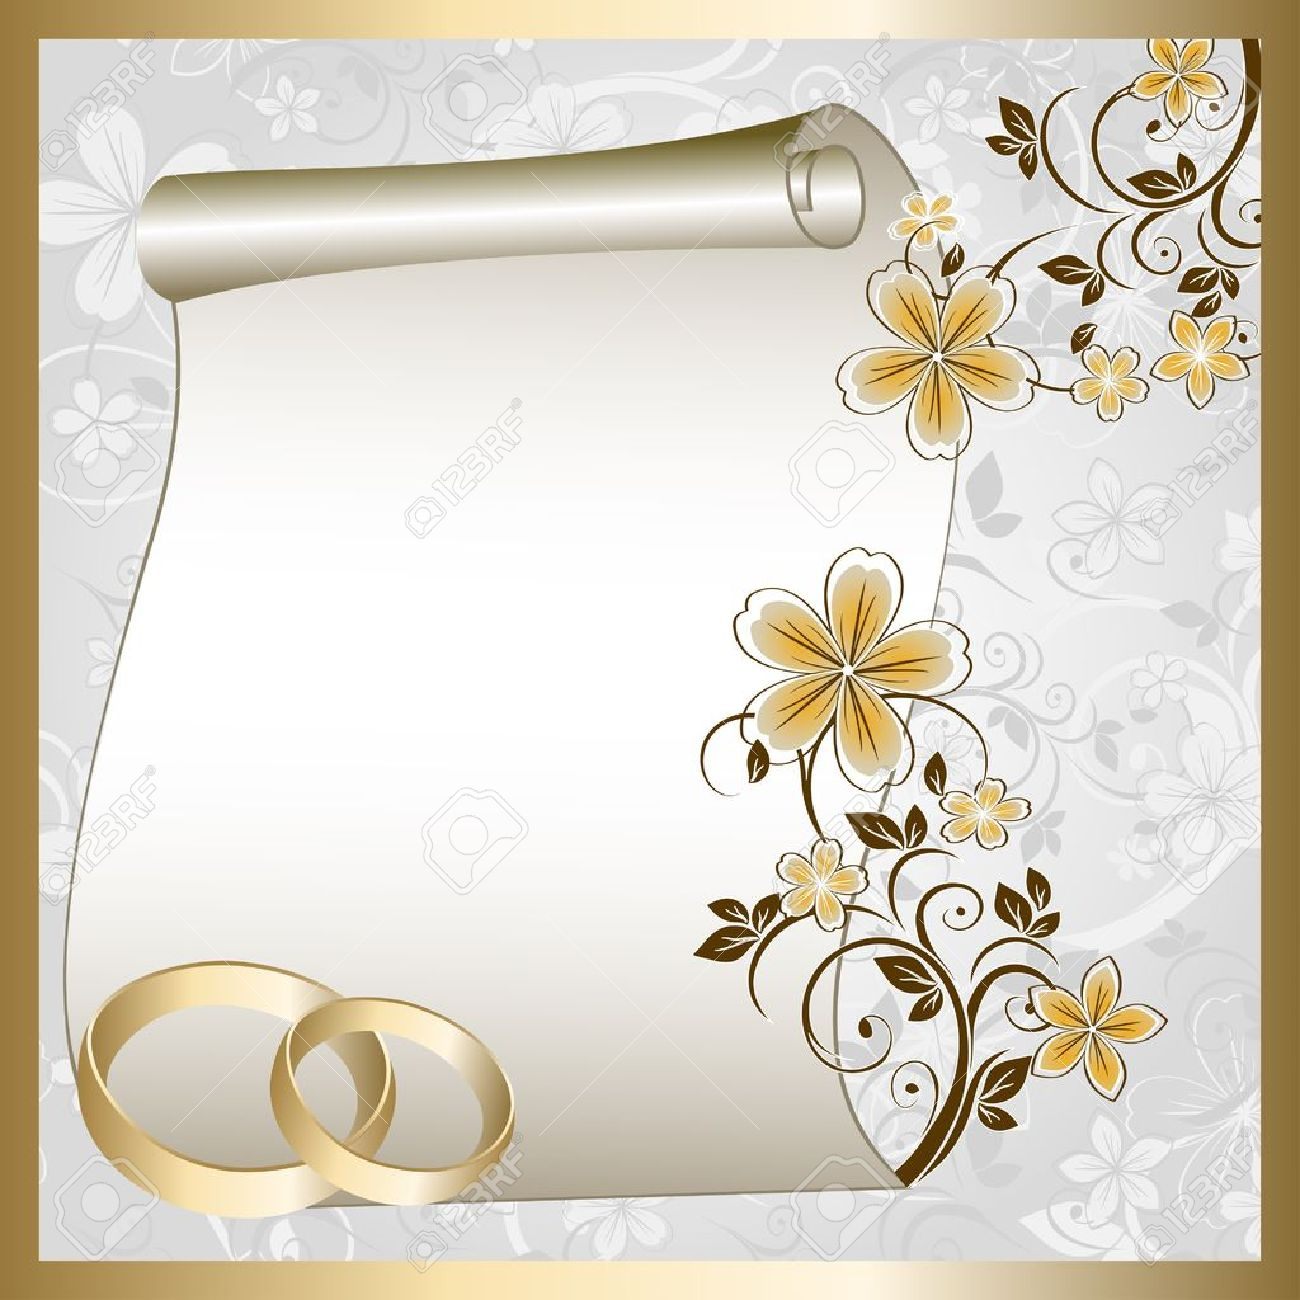 Wedding card with a floral pattern and place for text - 10594257